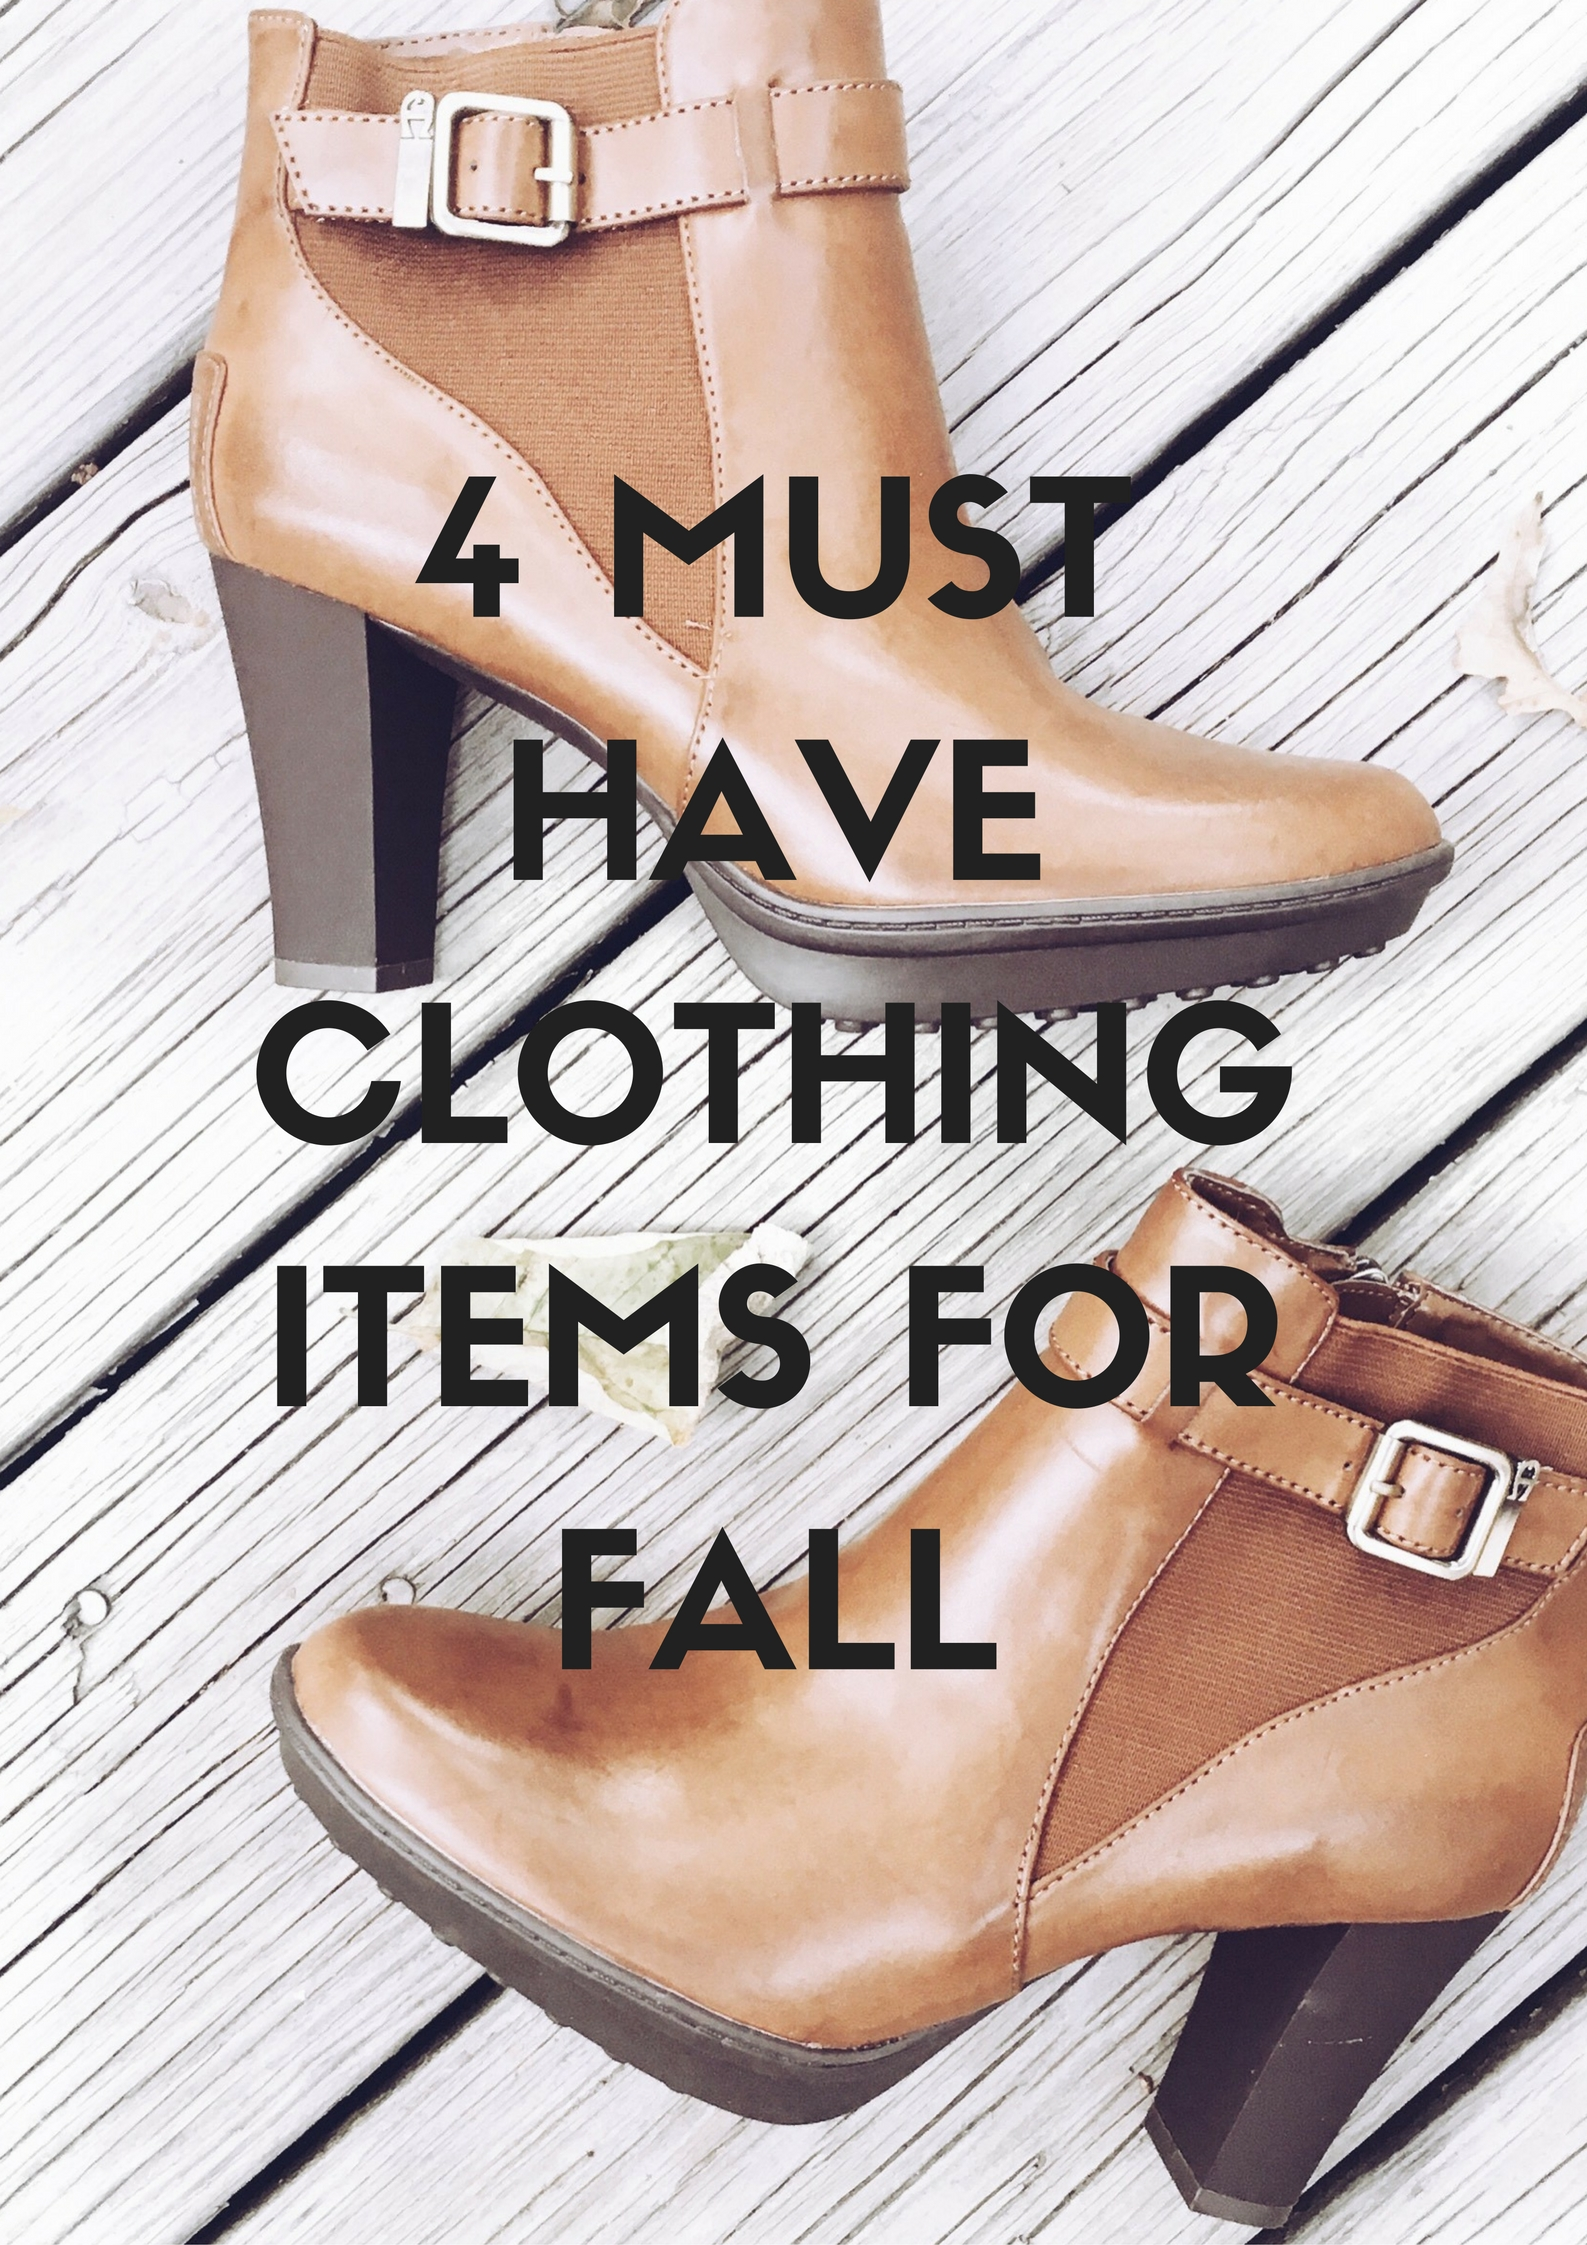 final-must-have-clothing-items-for-fall